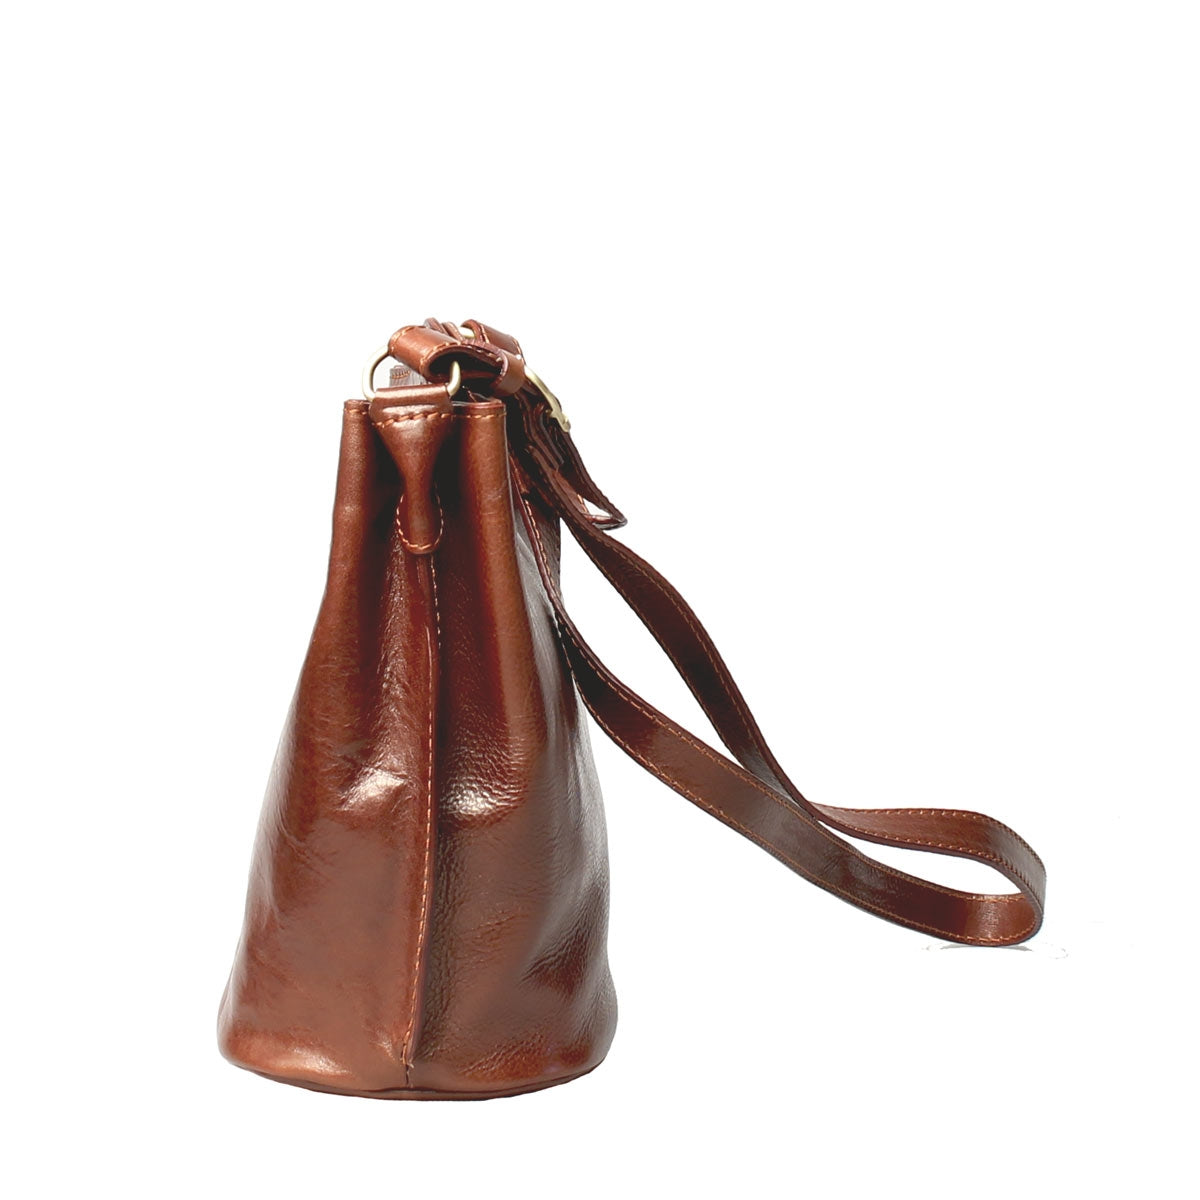 Image 2 of the 'Palermo' Tan Leather Bucket Bag